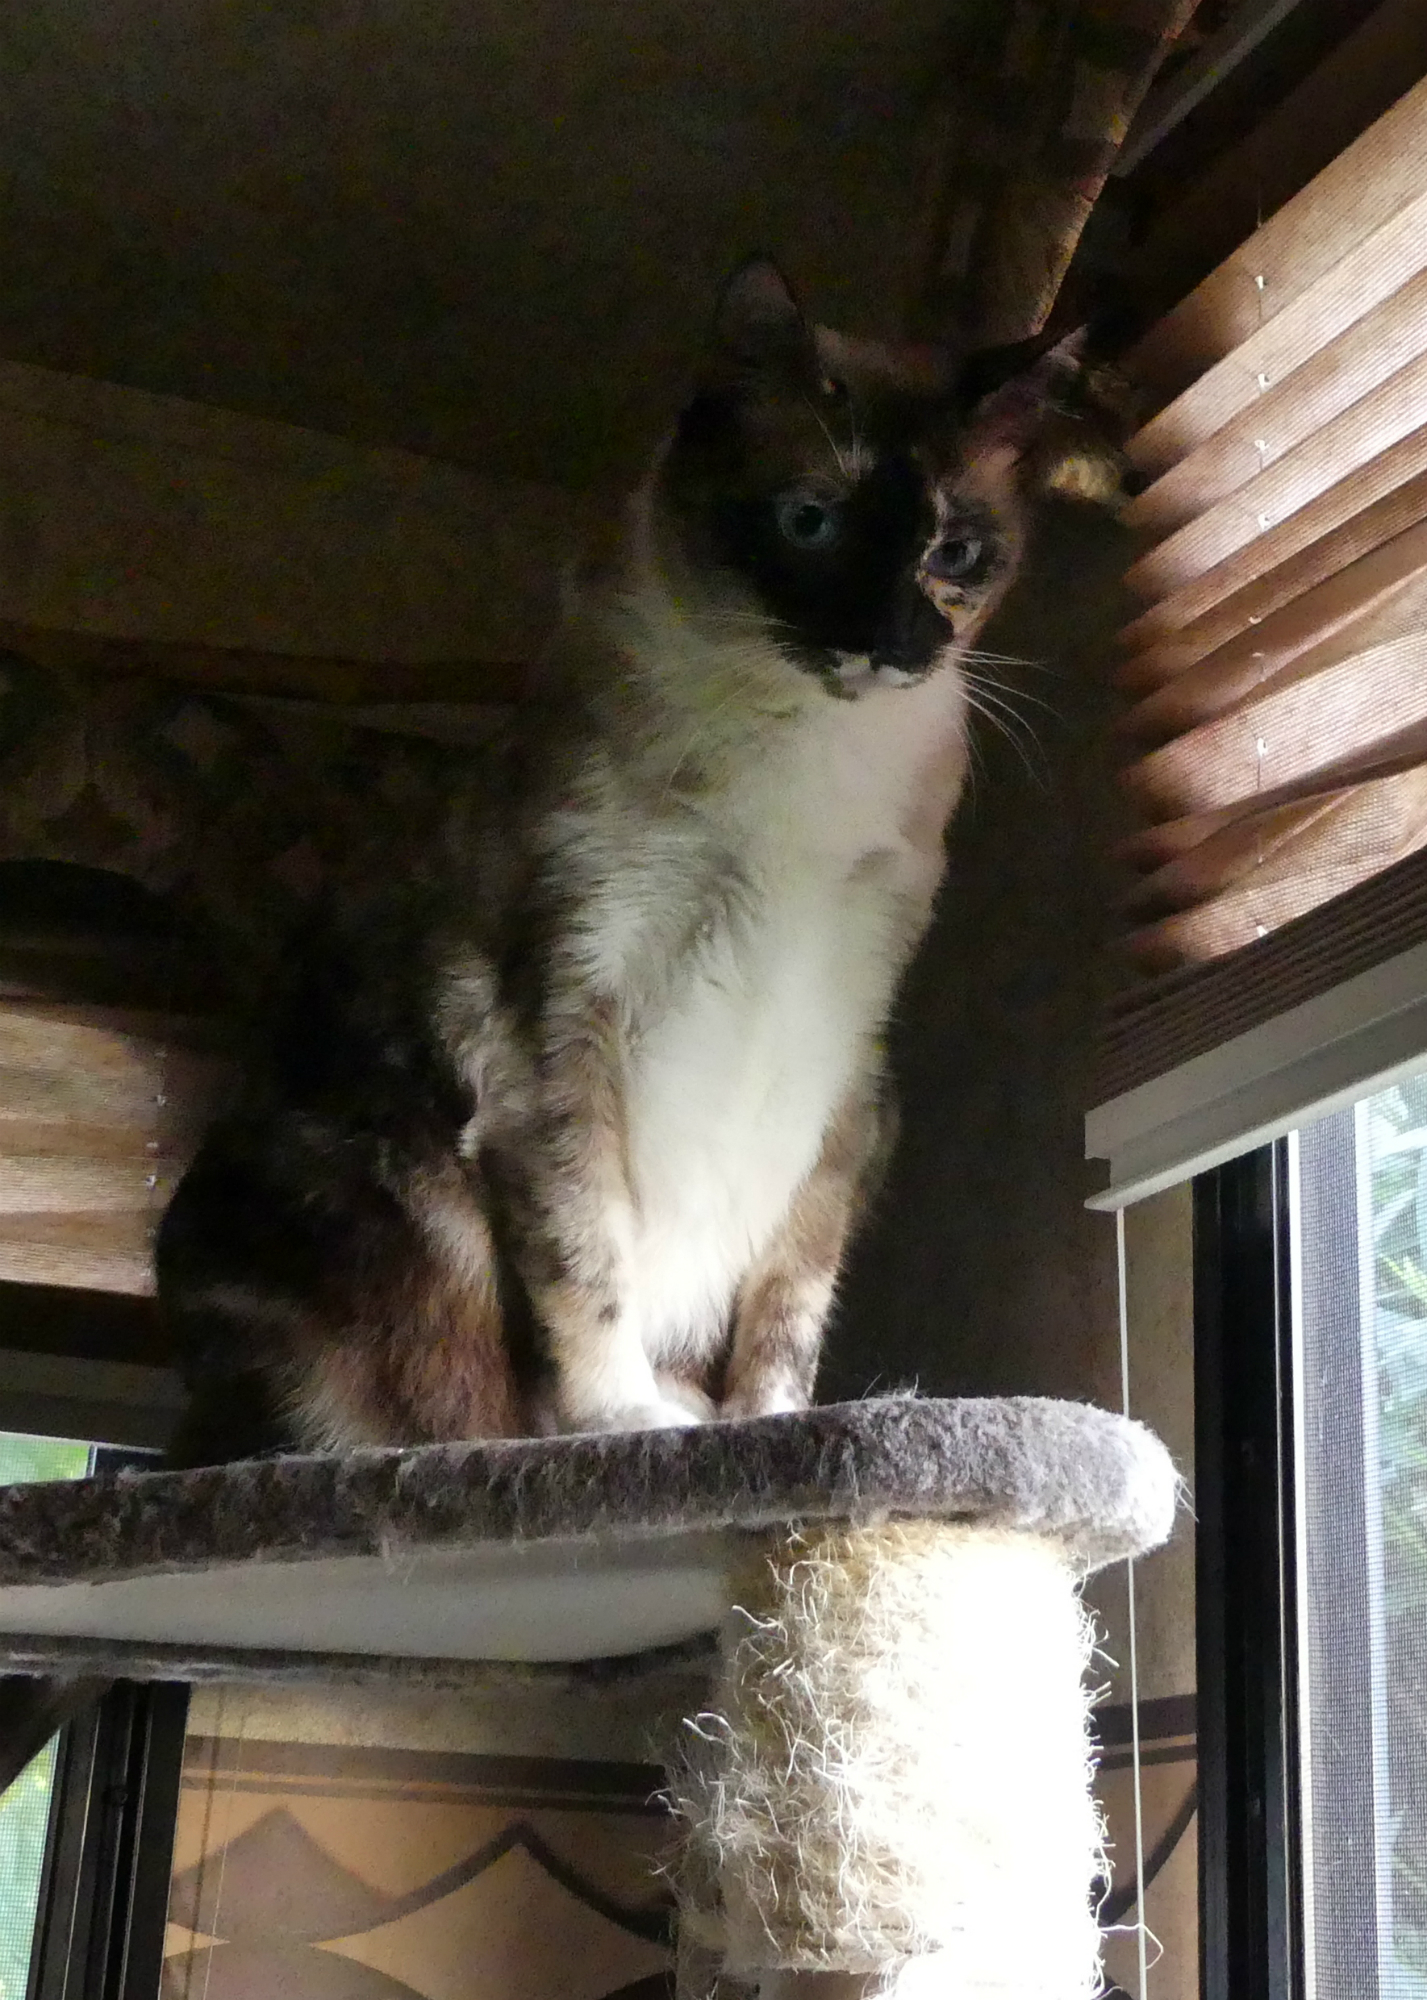 Miss Jenny on her perch